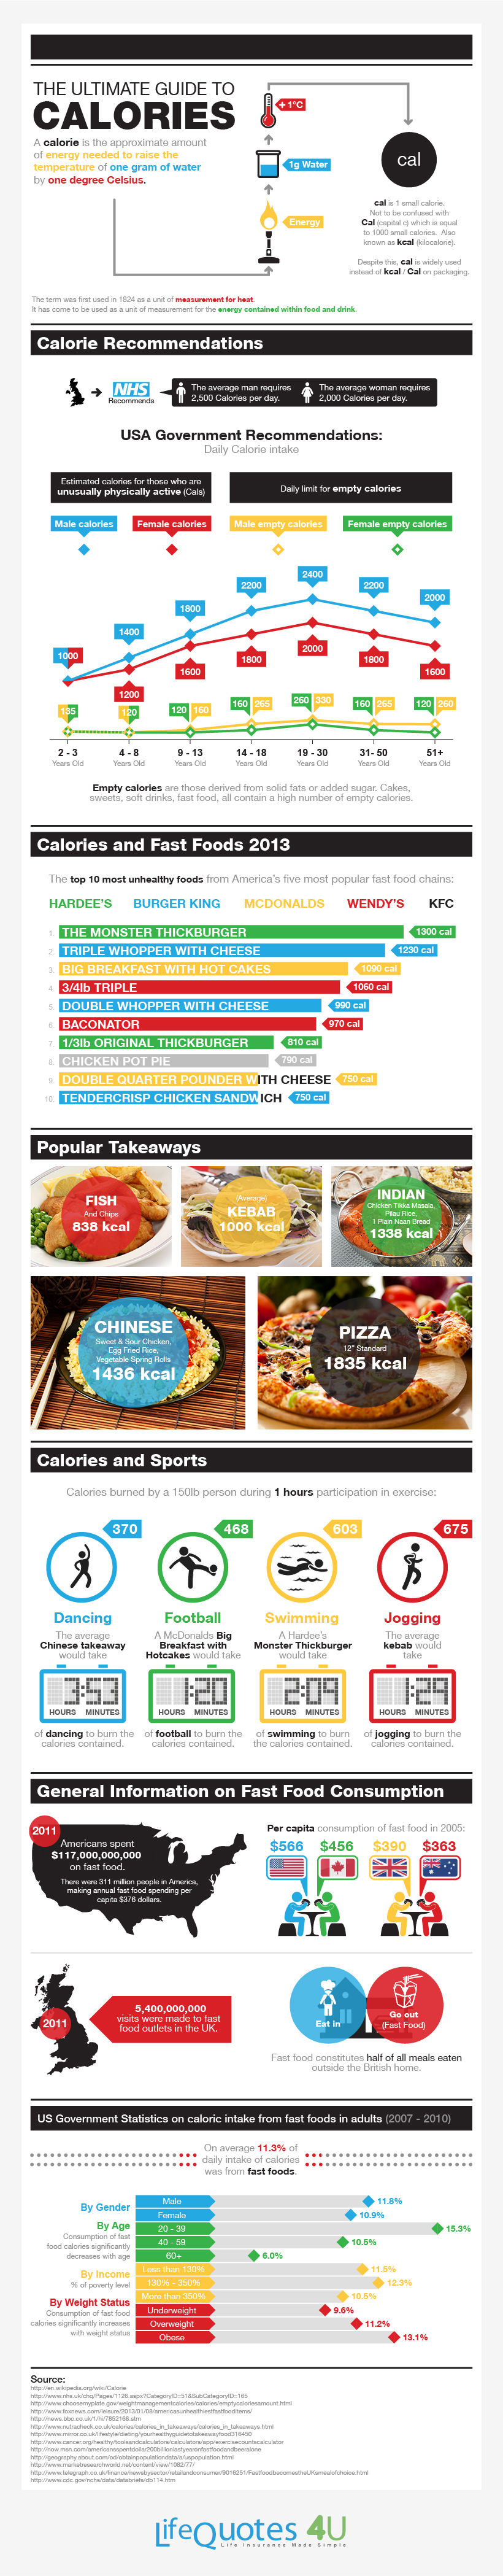 The Ultimate Guide To Calories